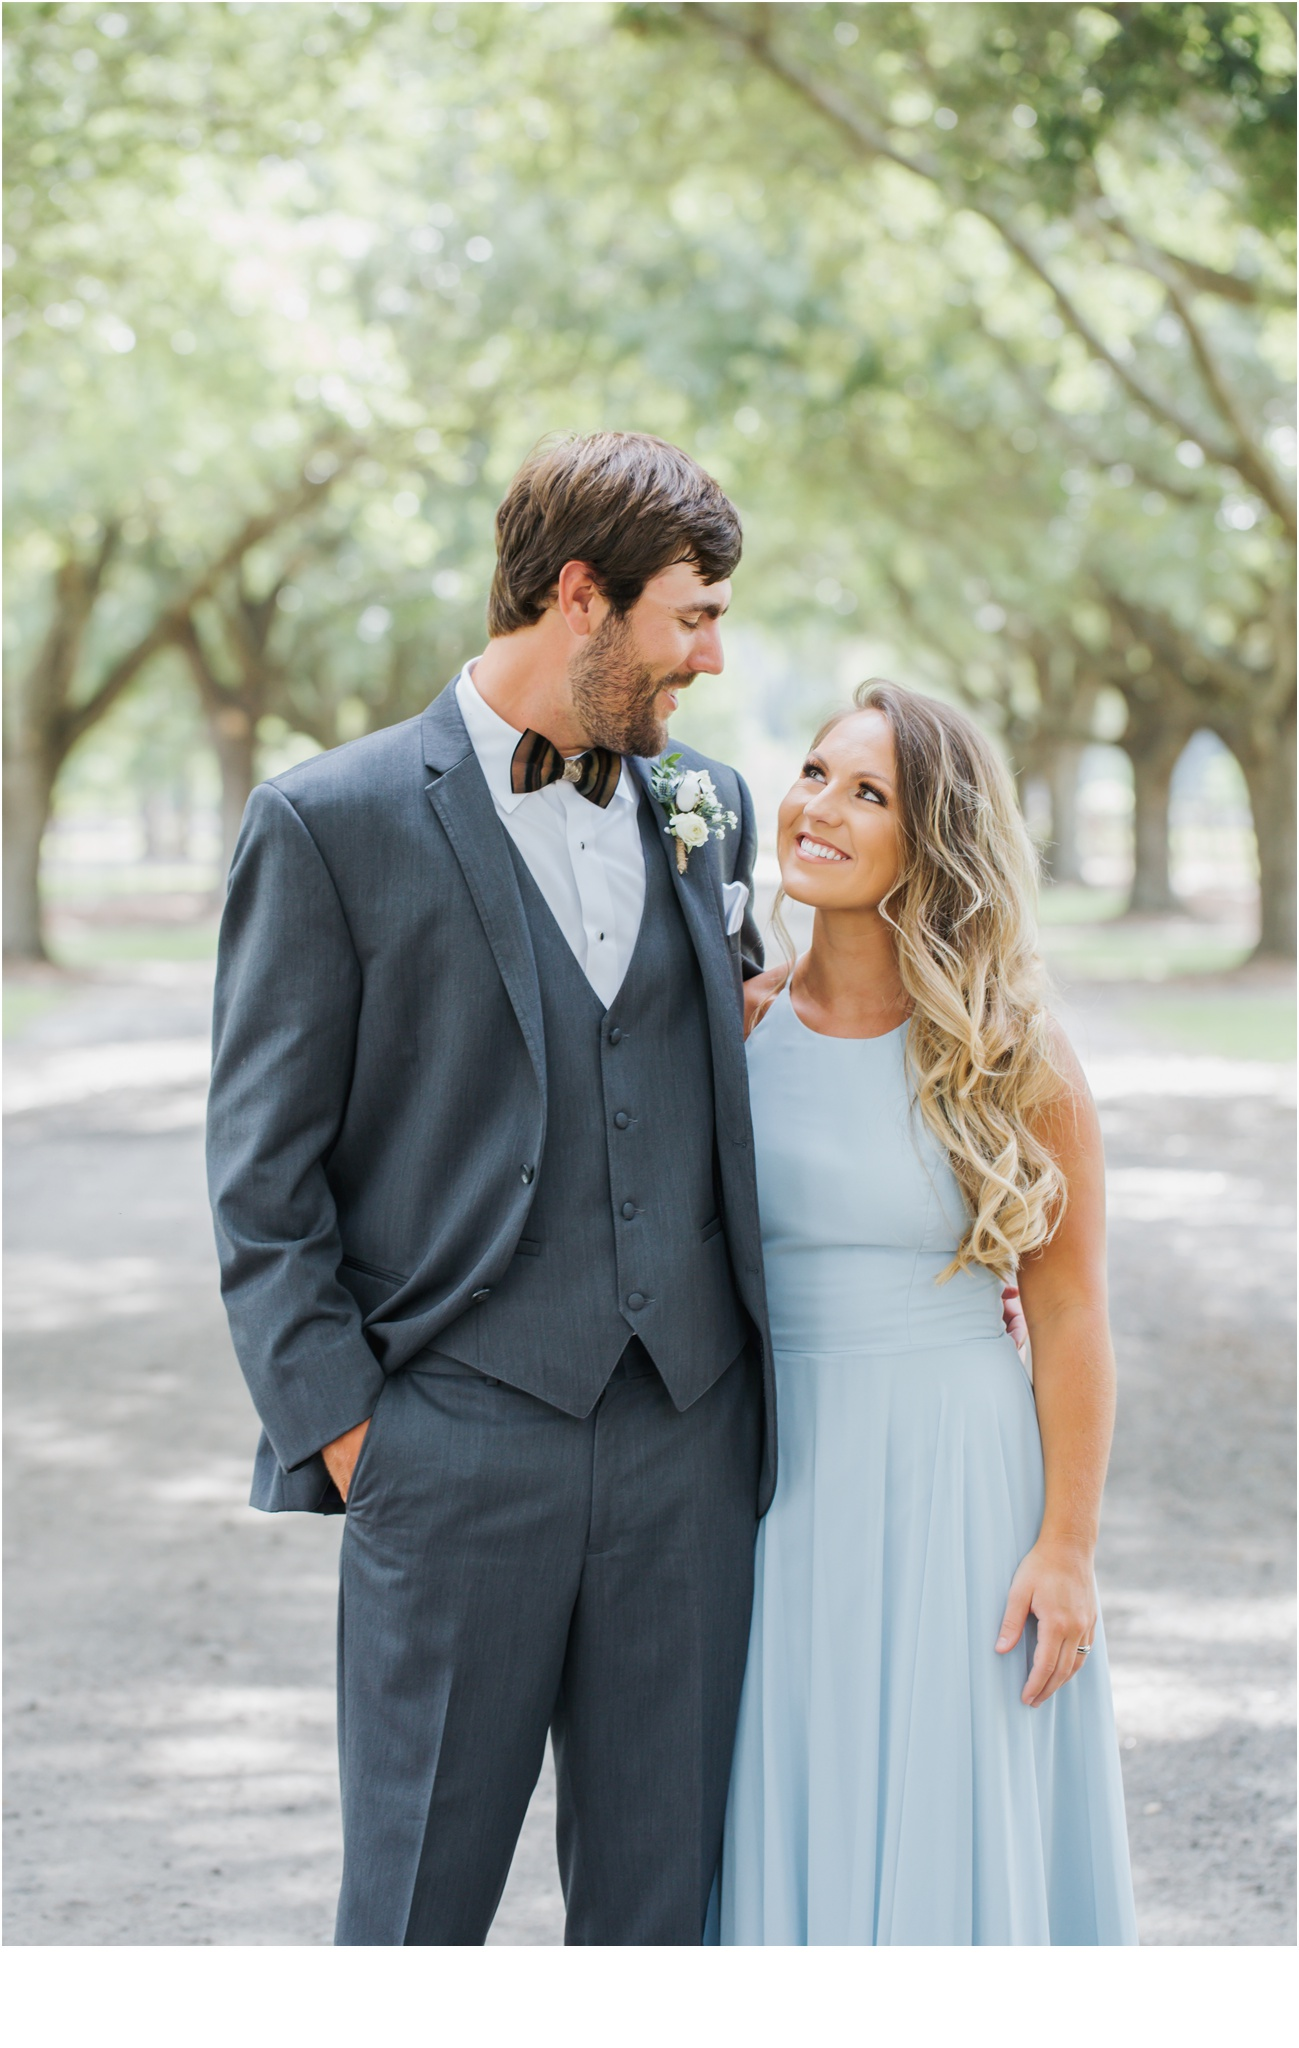 Rainey_Gregg_Photography_St._Simons_Island_Georgia_California_Wedding_Portrait_Photography_0902.jpg